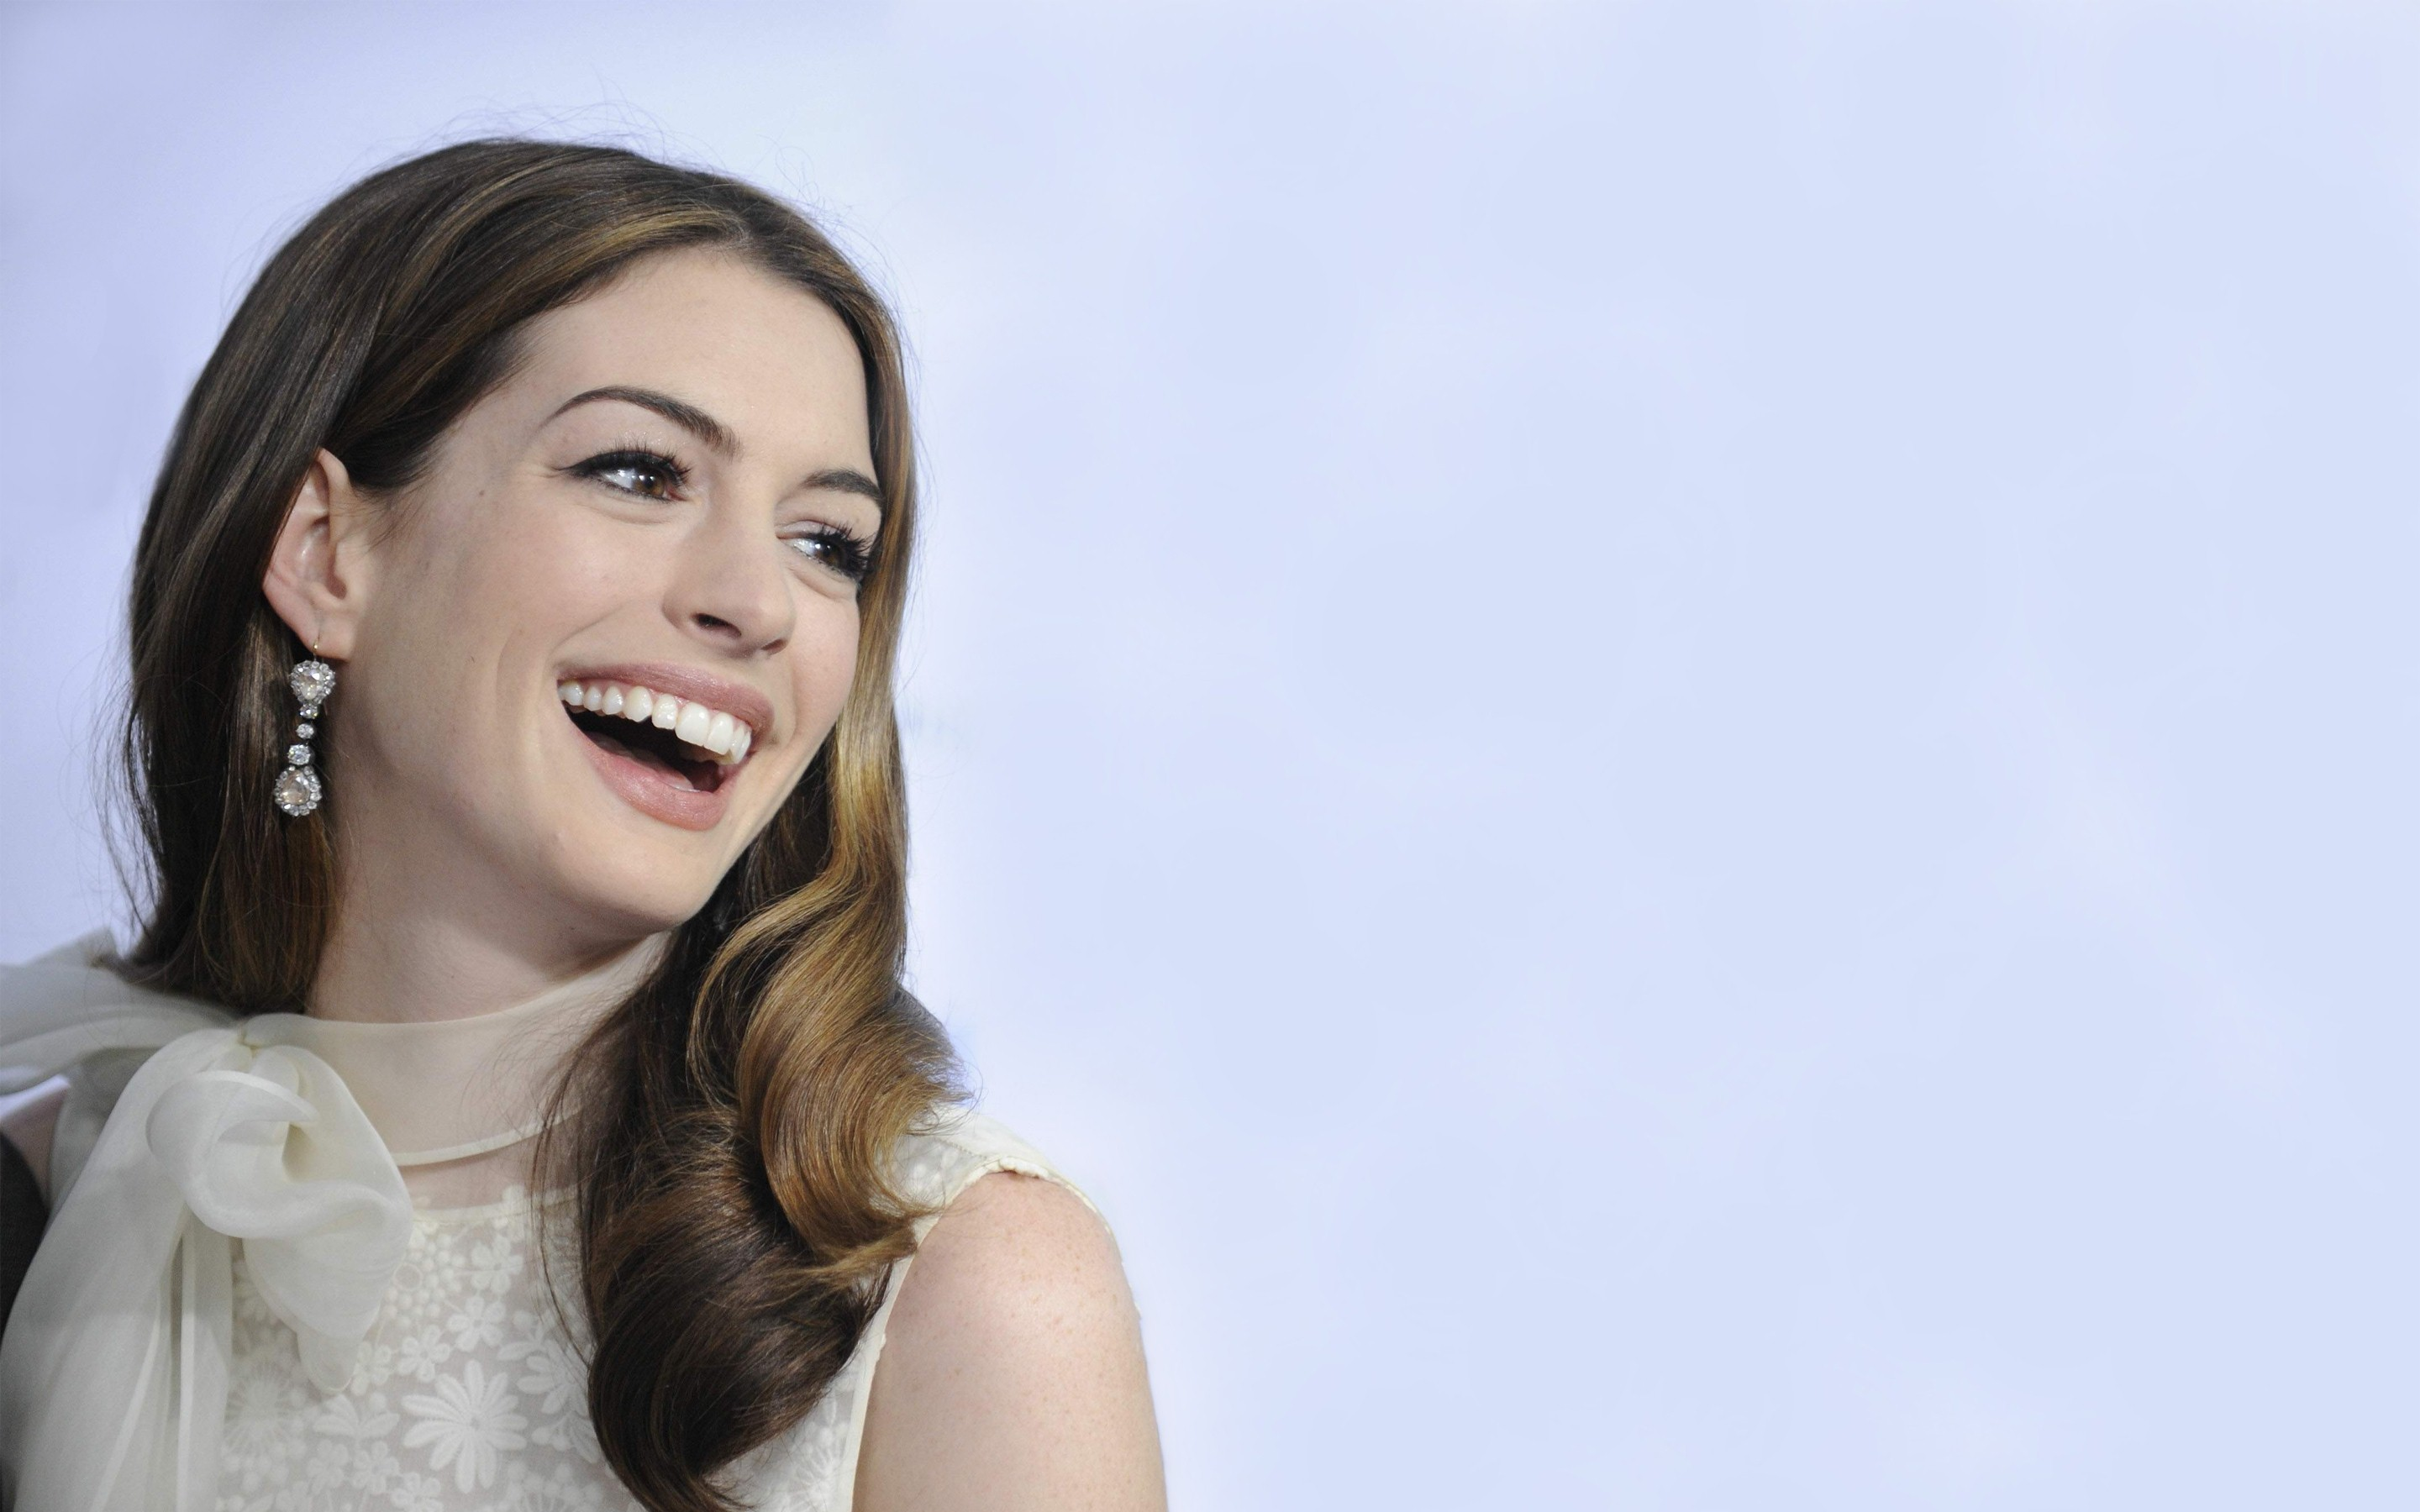 Cute_Smile_of_Anne_Hathaway_High_Definition_Wallpaper